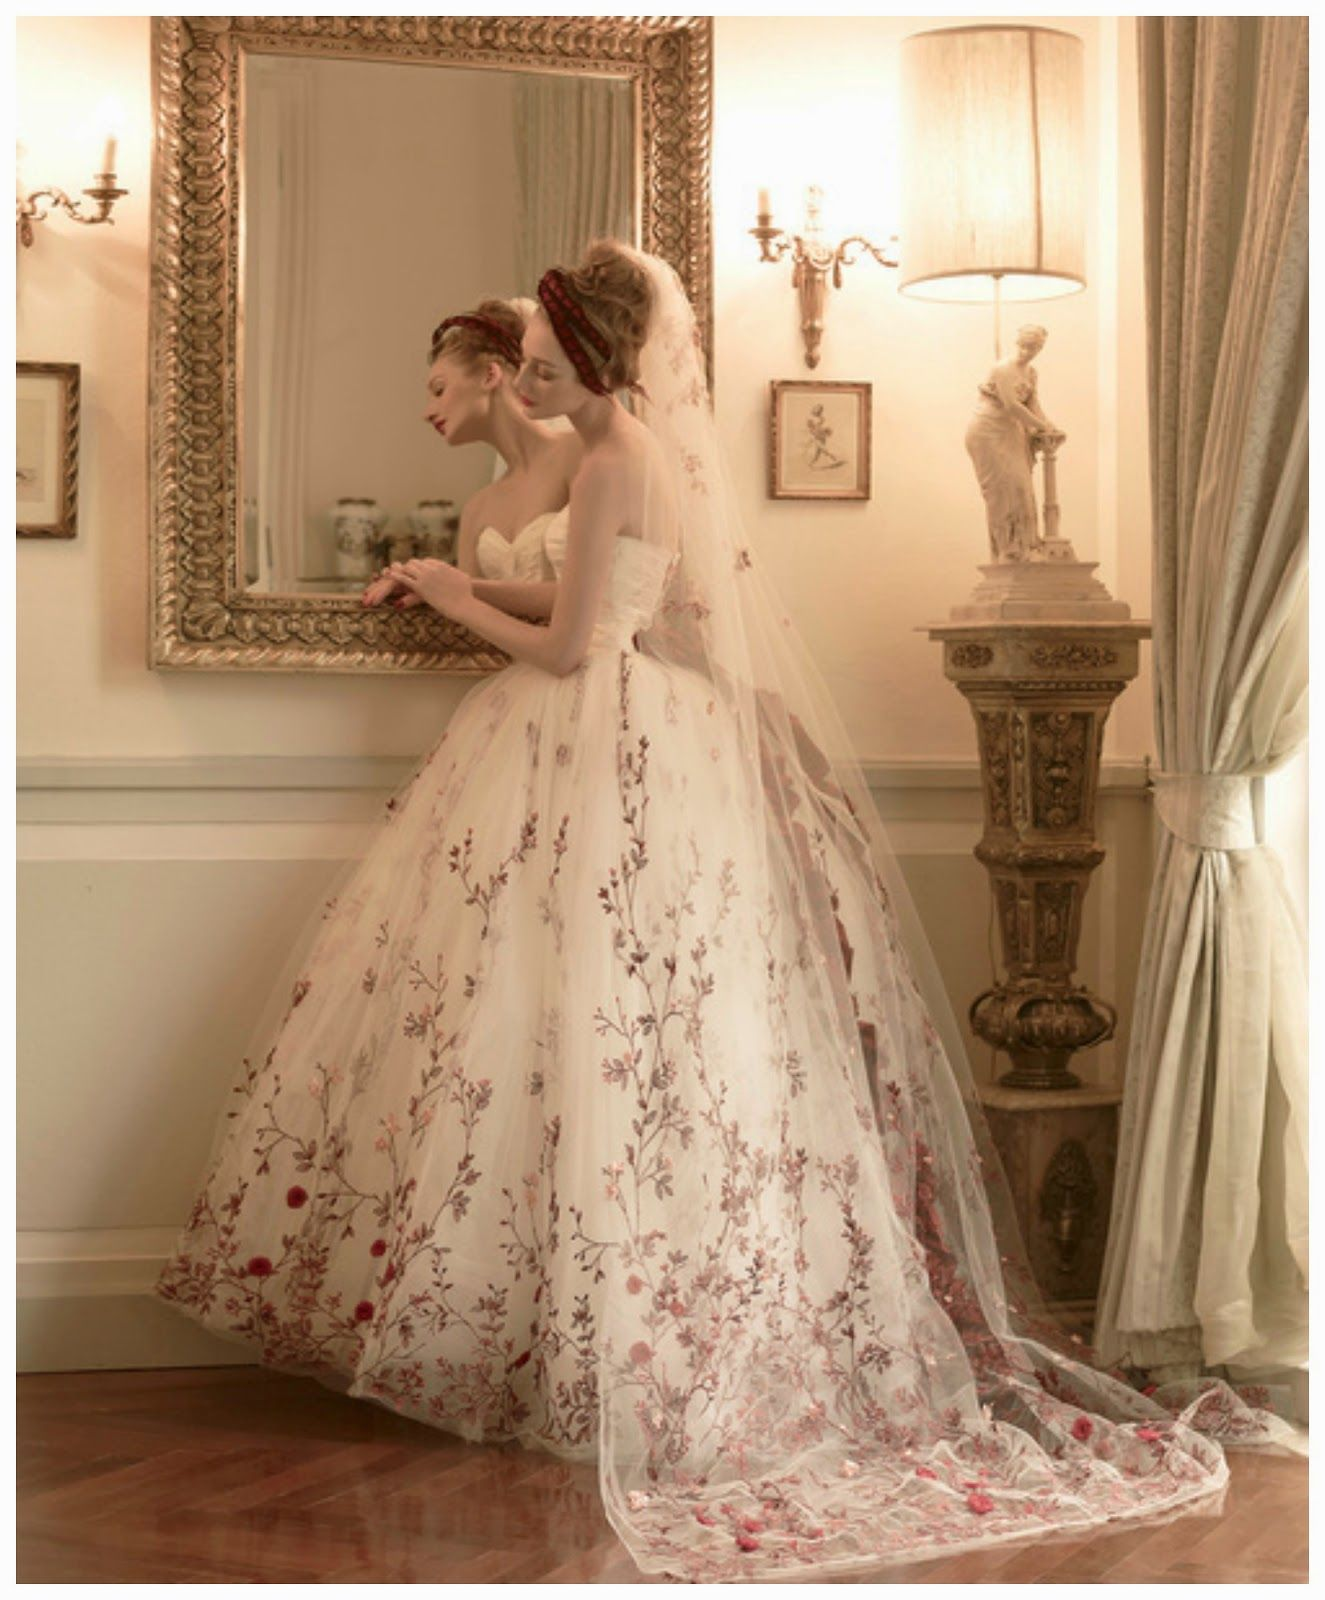 St.Pucchi wedding gown | Dresses | Pinterest | Gowns, Saints and ...